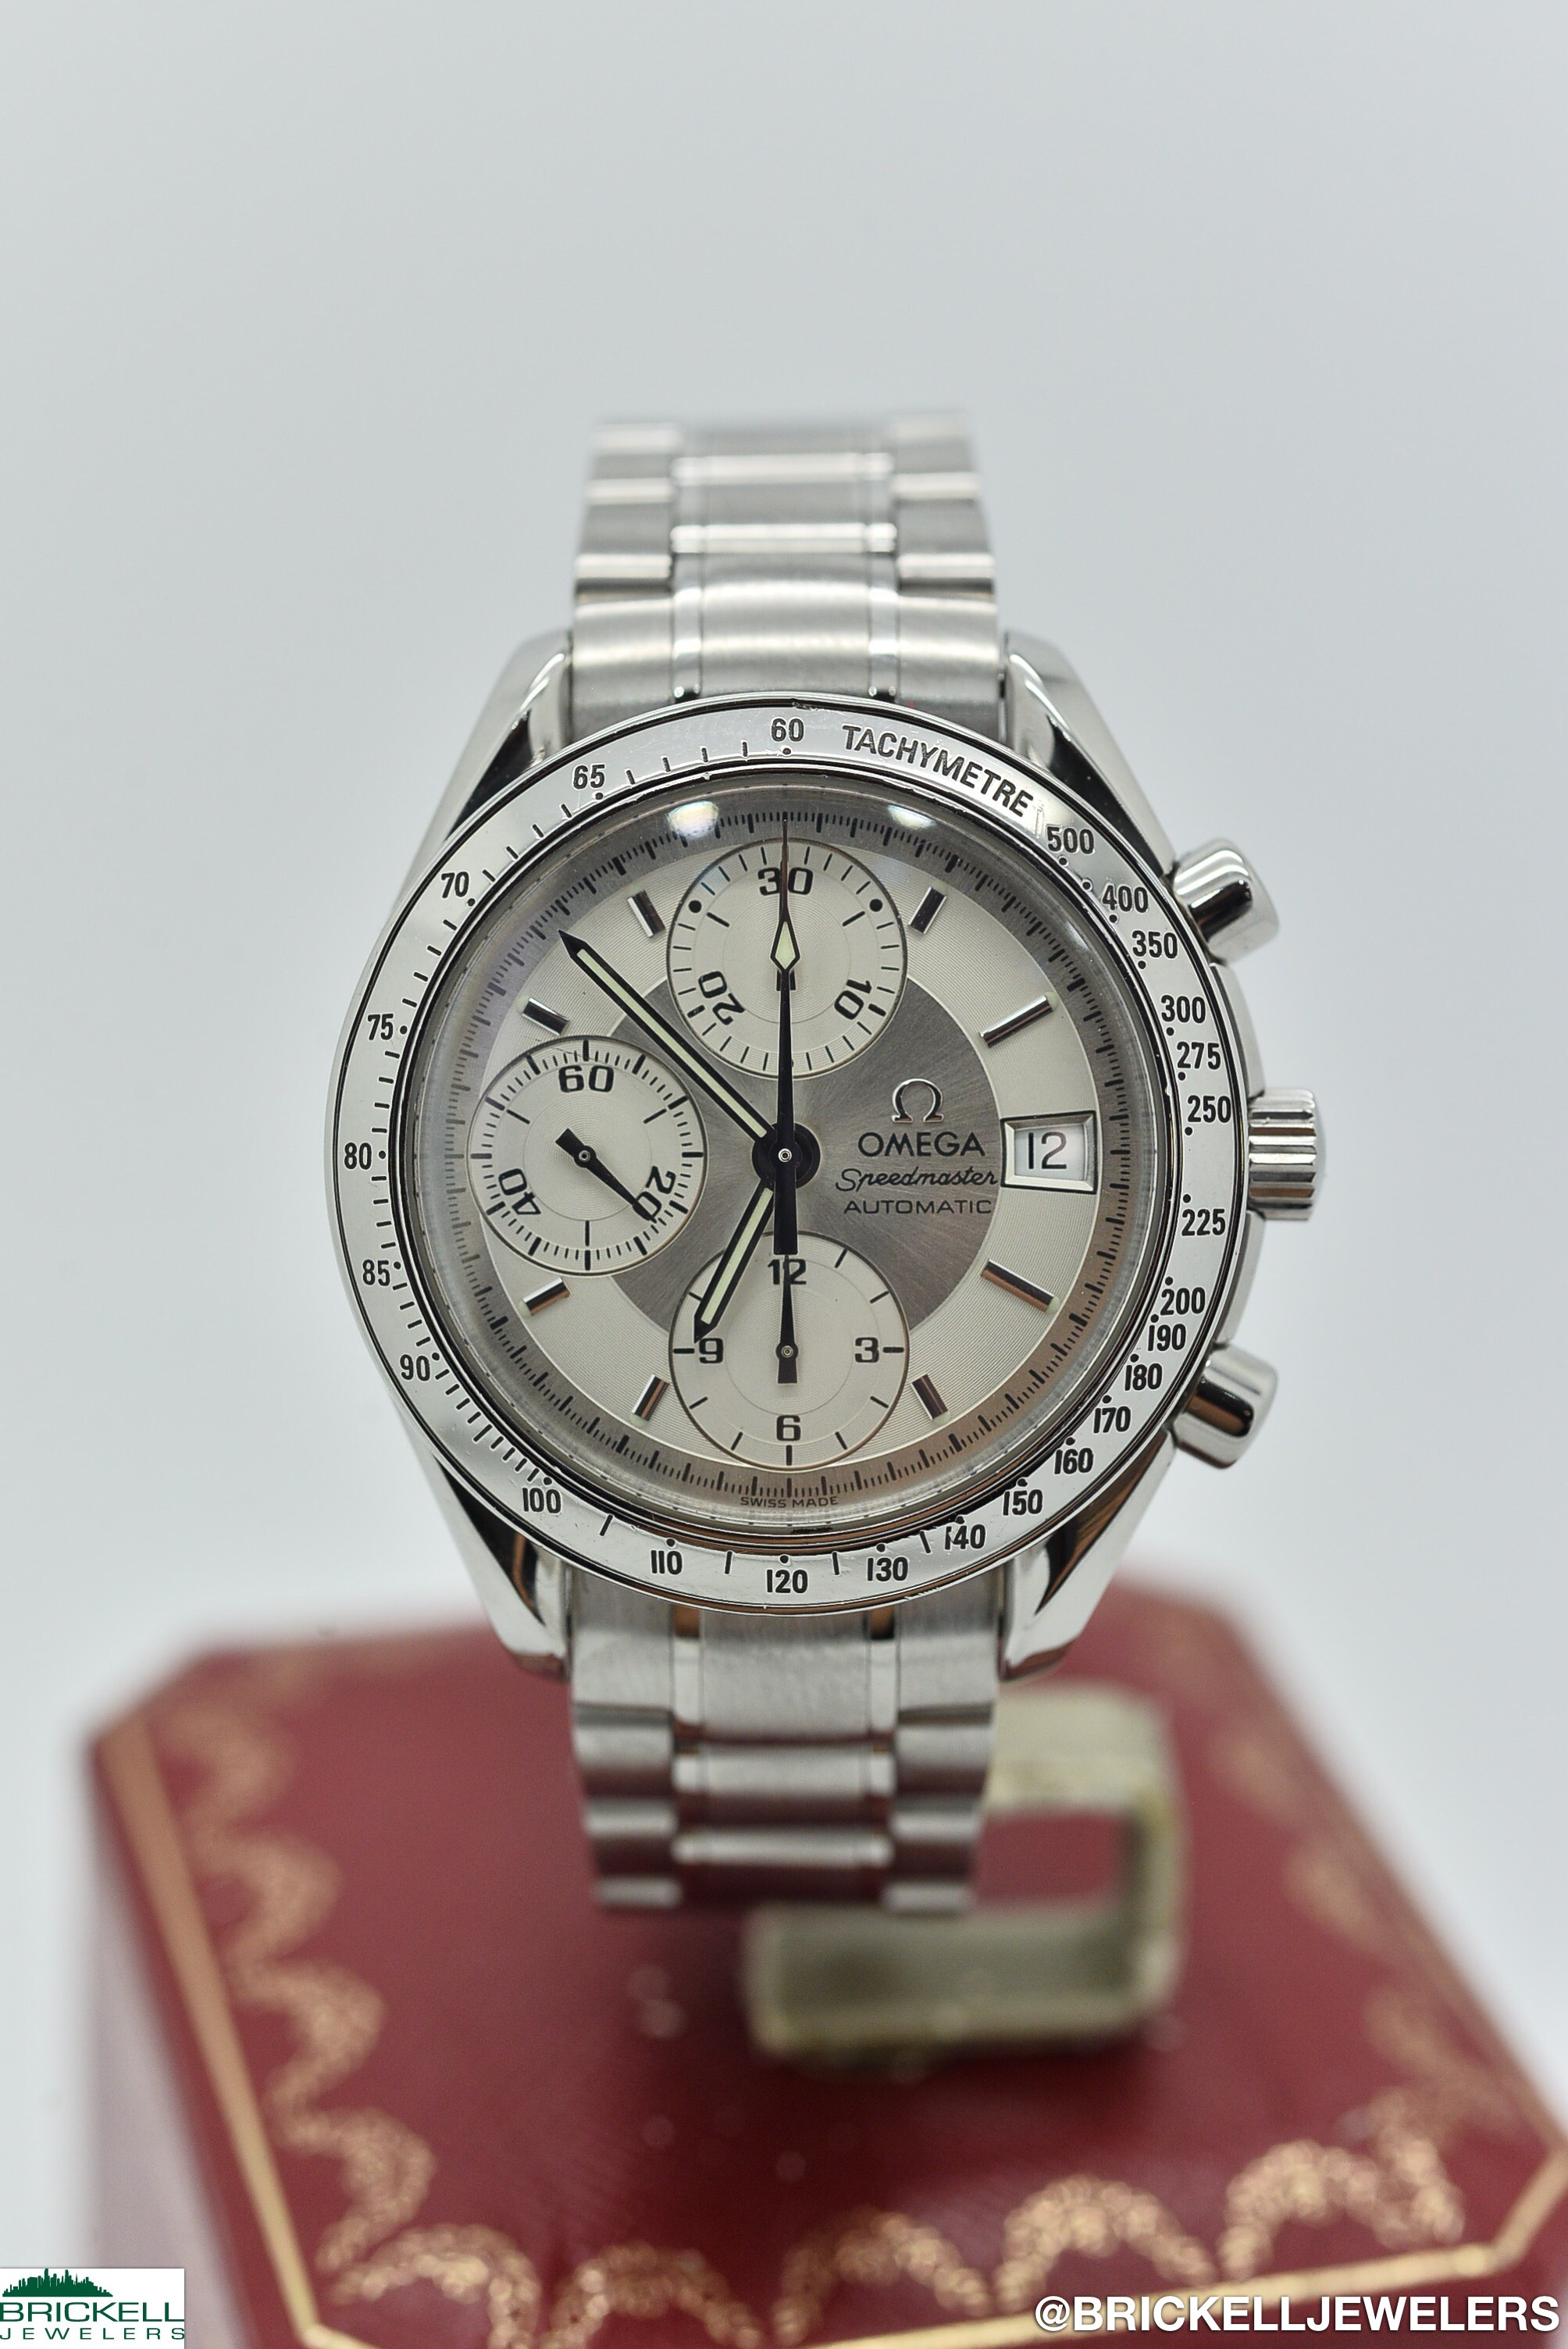 OMEGA	SPEEDMASTER		SILVER / GREY					Stainless Steel			Mechanical (Automatic)	WATCH